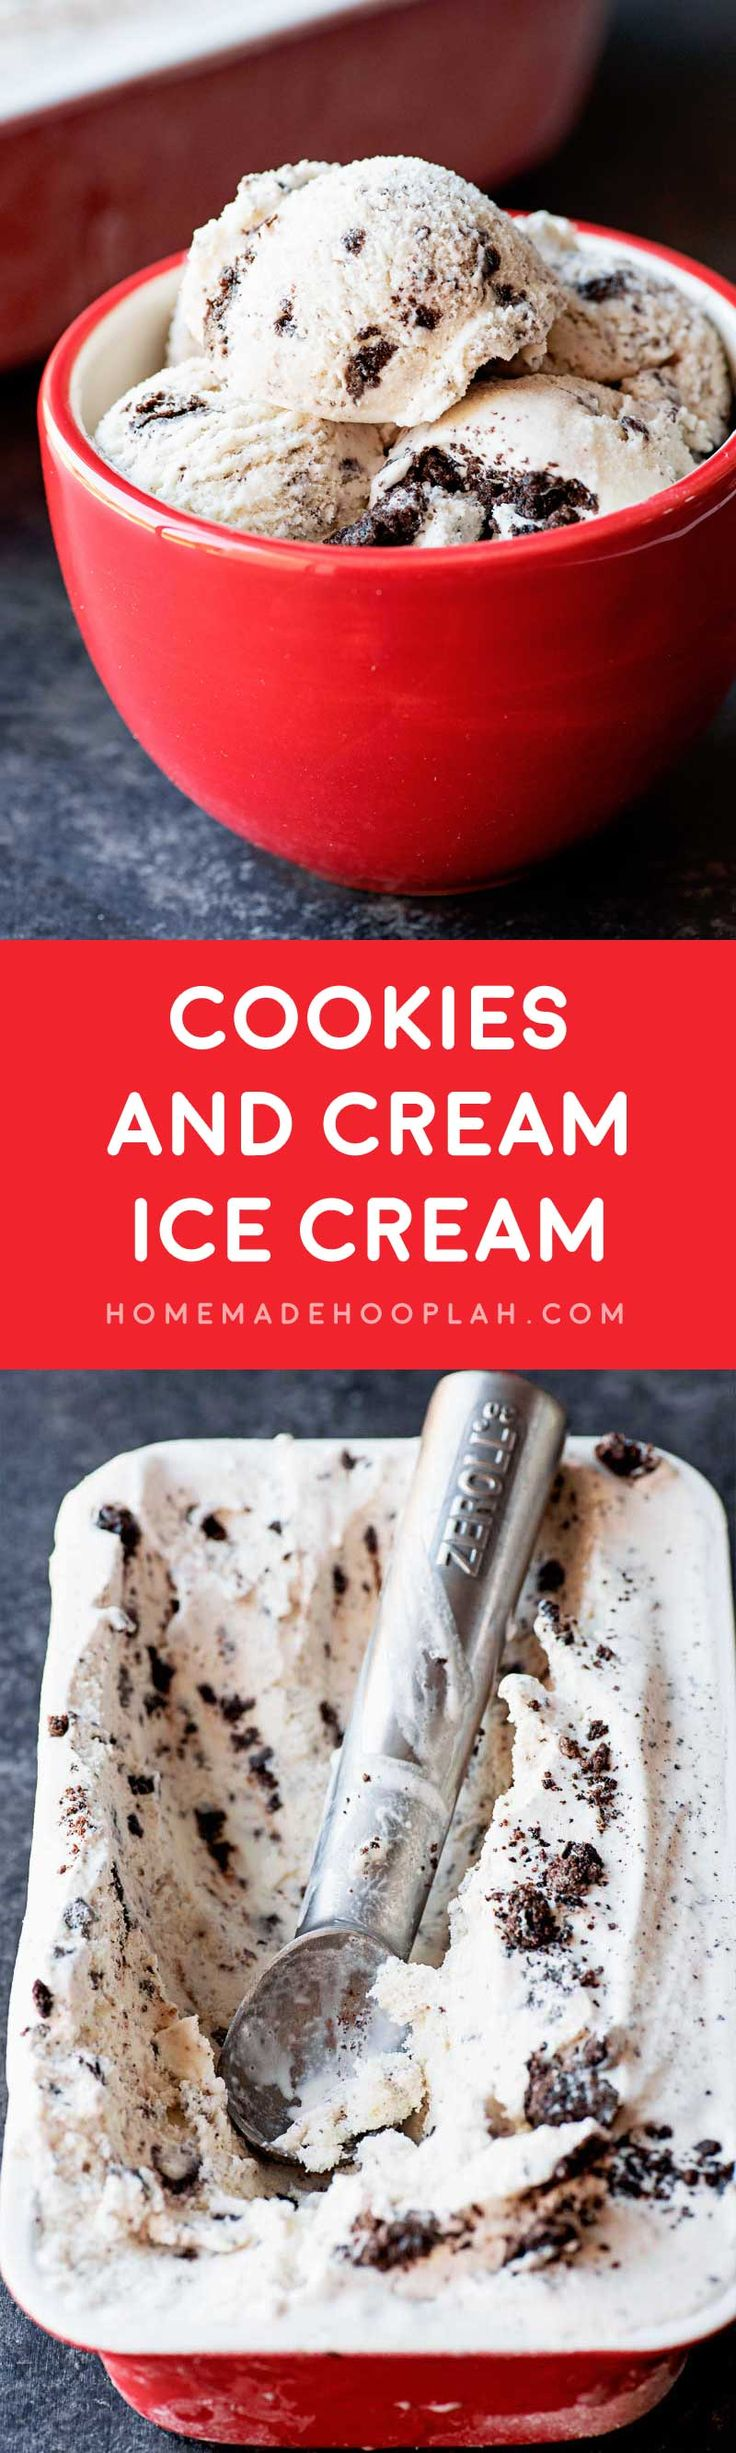 Cookies and Cream Ice Cream! Delicious cookies and cream ice cream made right at home (and with no eggs in the recipe.) Customize it to your tastes with your favorite cookie! | HomemadeHooplah.com